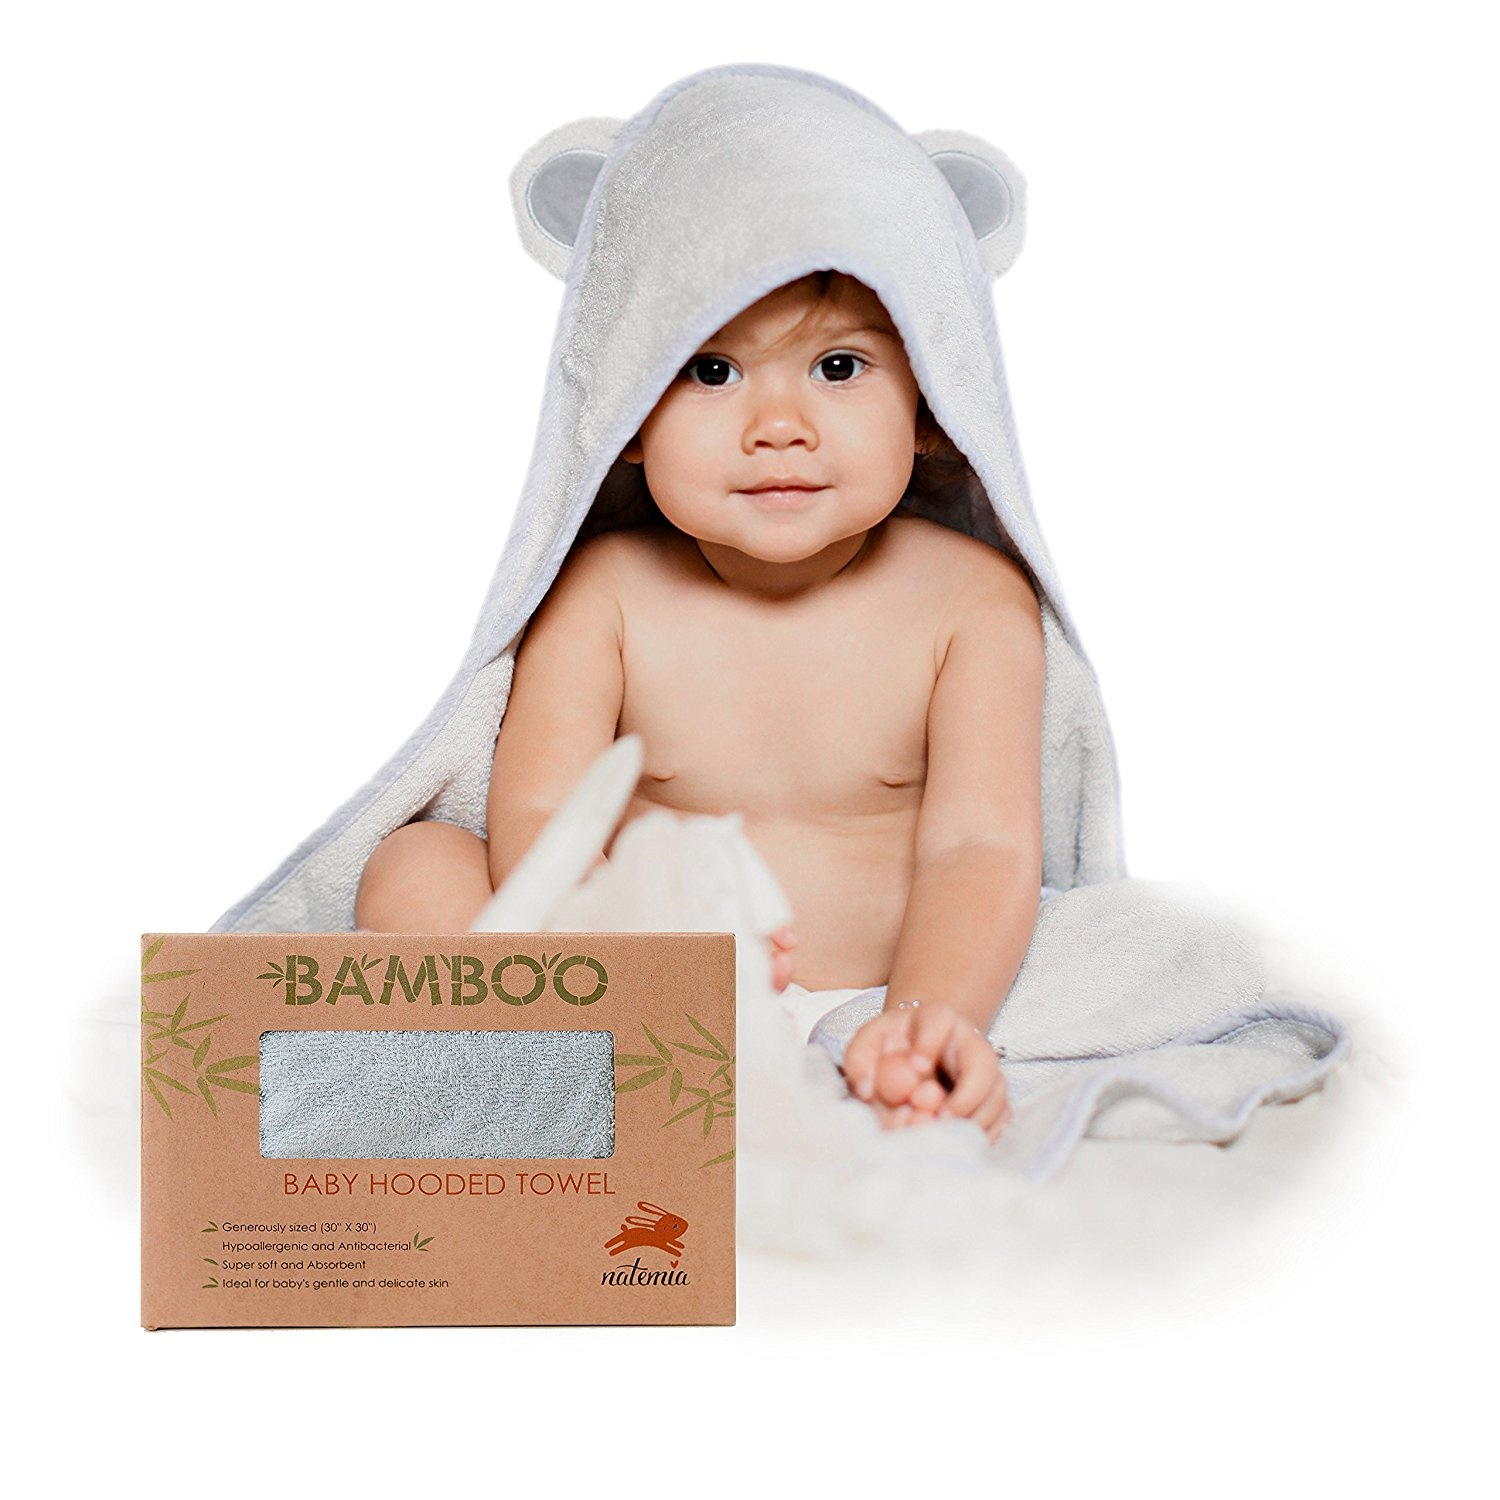 Super Absorbent Hypoallergenic Toddler Infant Newborn Premium Baby Hooded Towel w//Bunny Crinkle Ears Extra Soft /& Luxury Large Organic Bamboo Bath Towel for Boy or Girl Baby Shower Gift